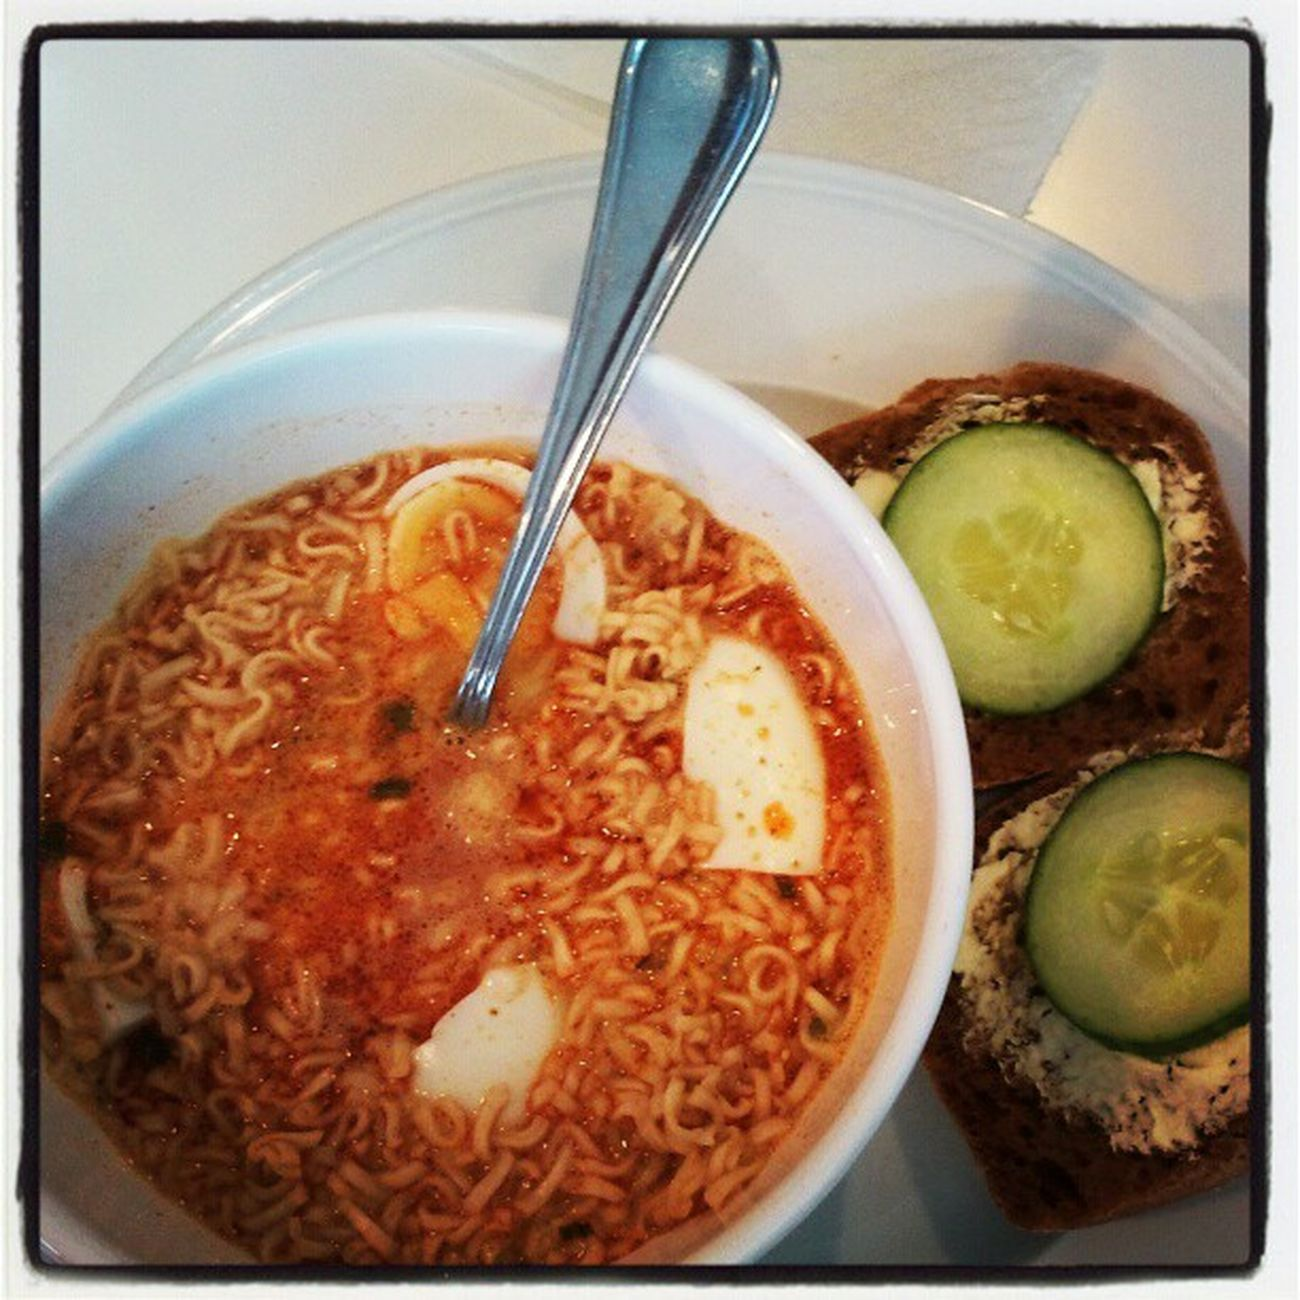 Spicy breakfast @ work Thai food Tom yum Noodle